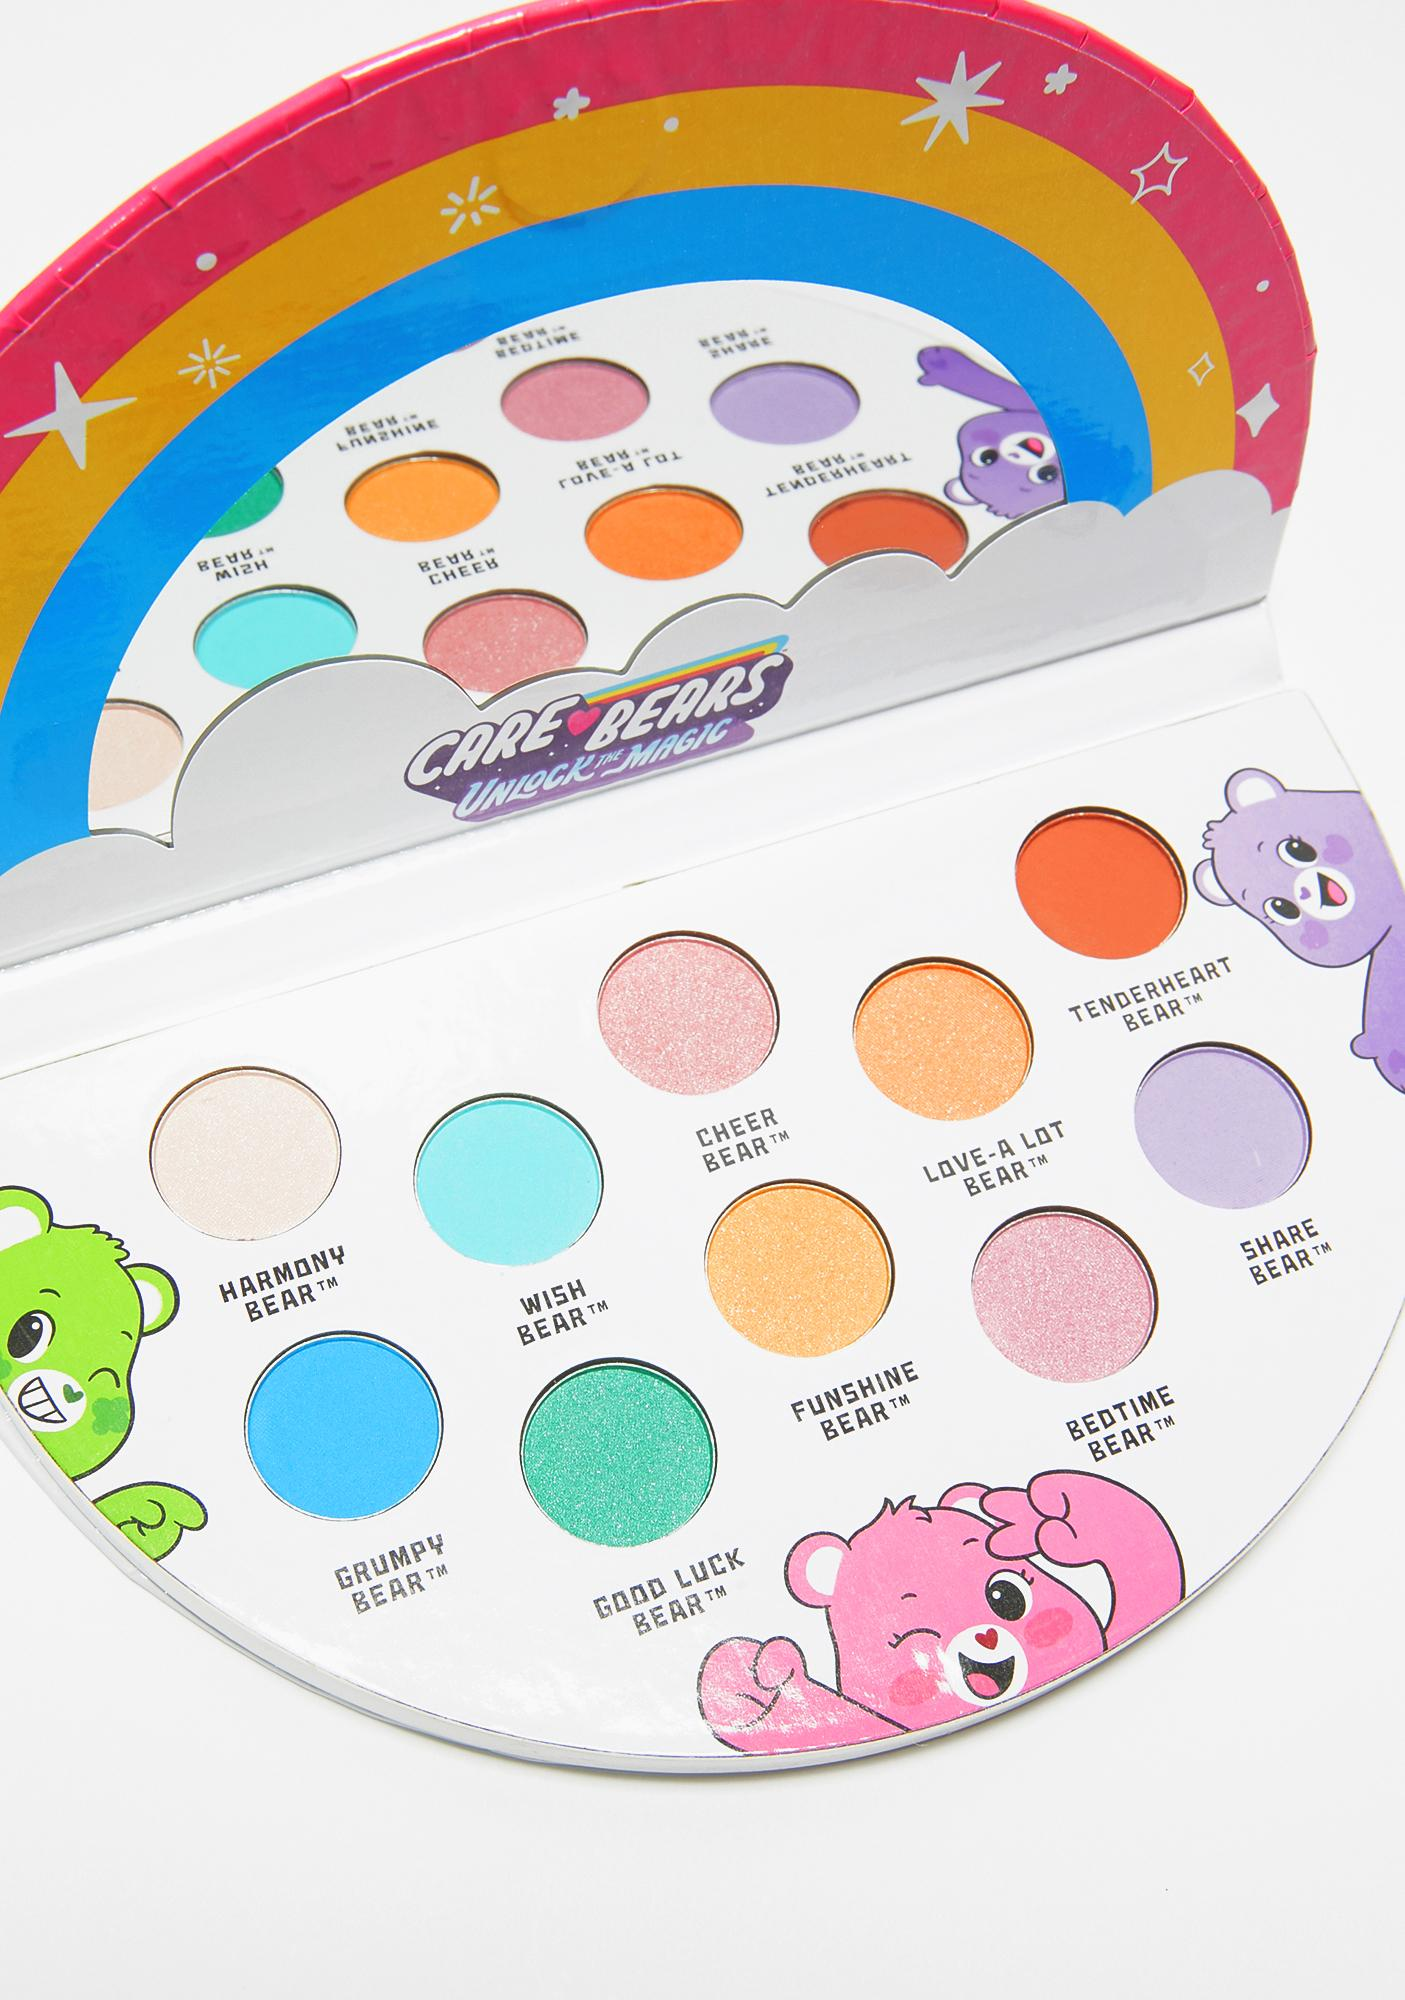 Taste Beauty Care Bears Unlock The Magic Eyeshadow Palette